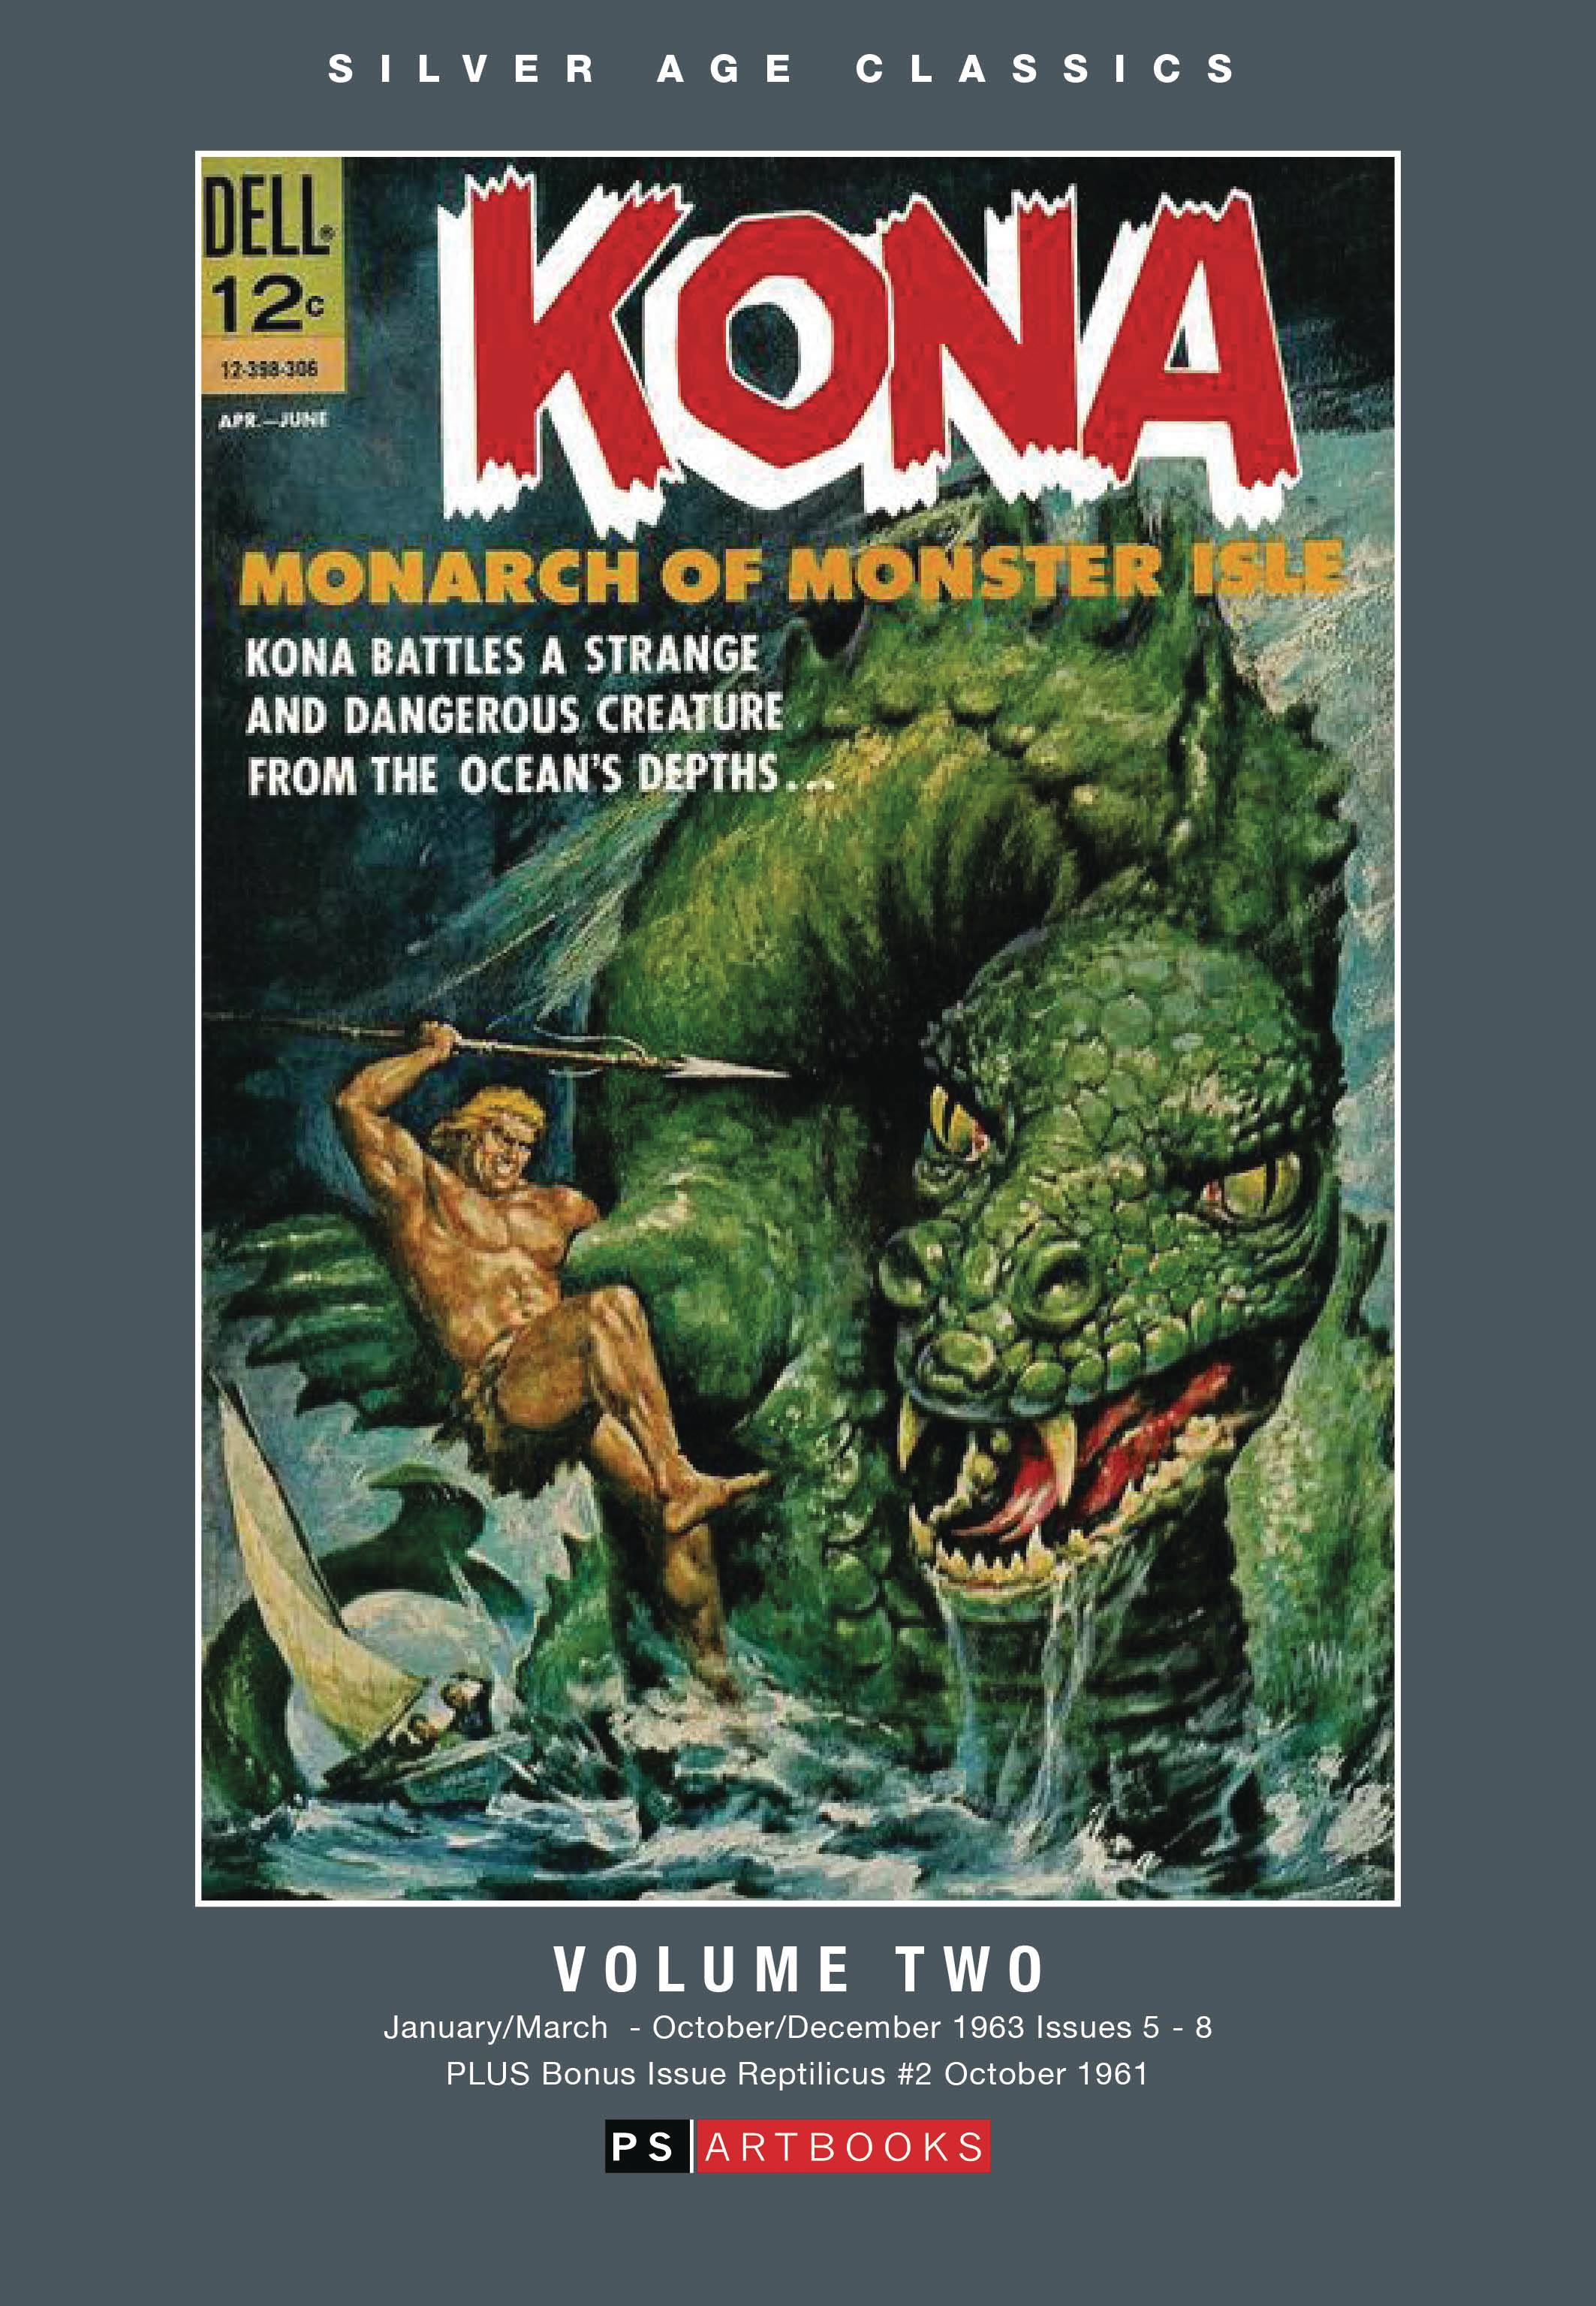 SILVER AGE CLASSICS KONA MONARCH MONSTER ISLE HC 02